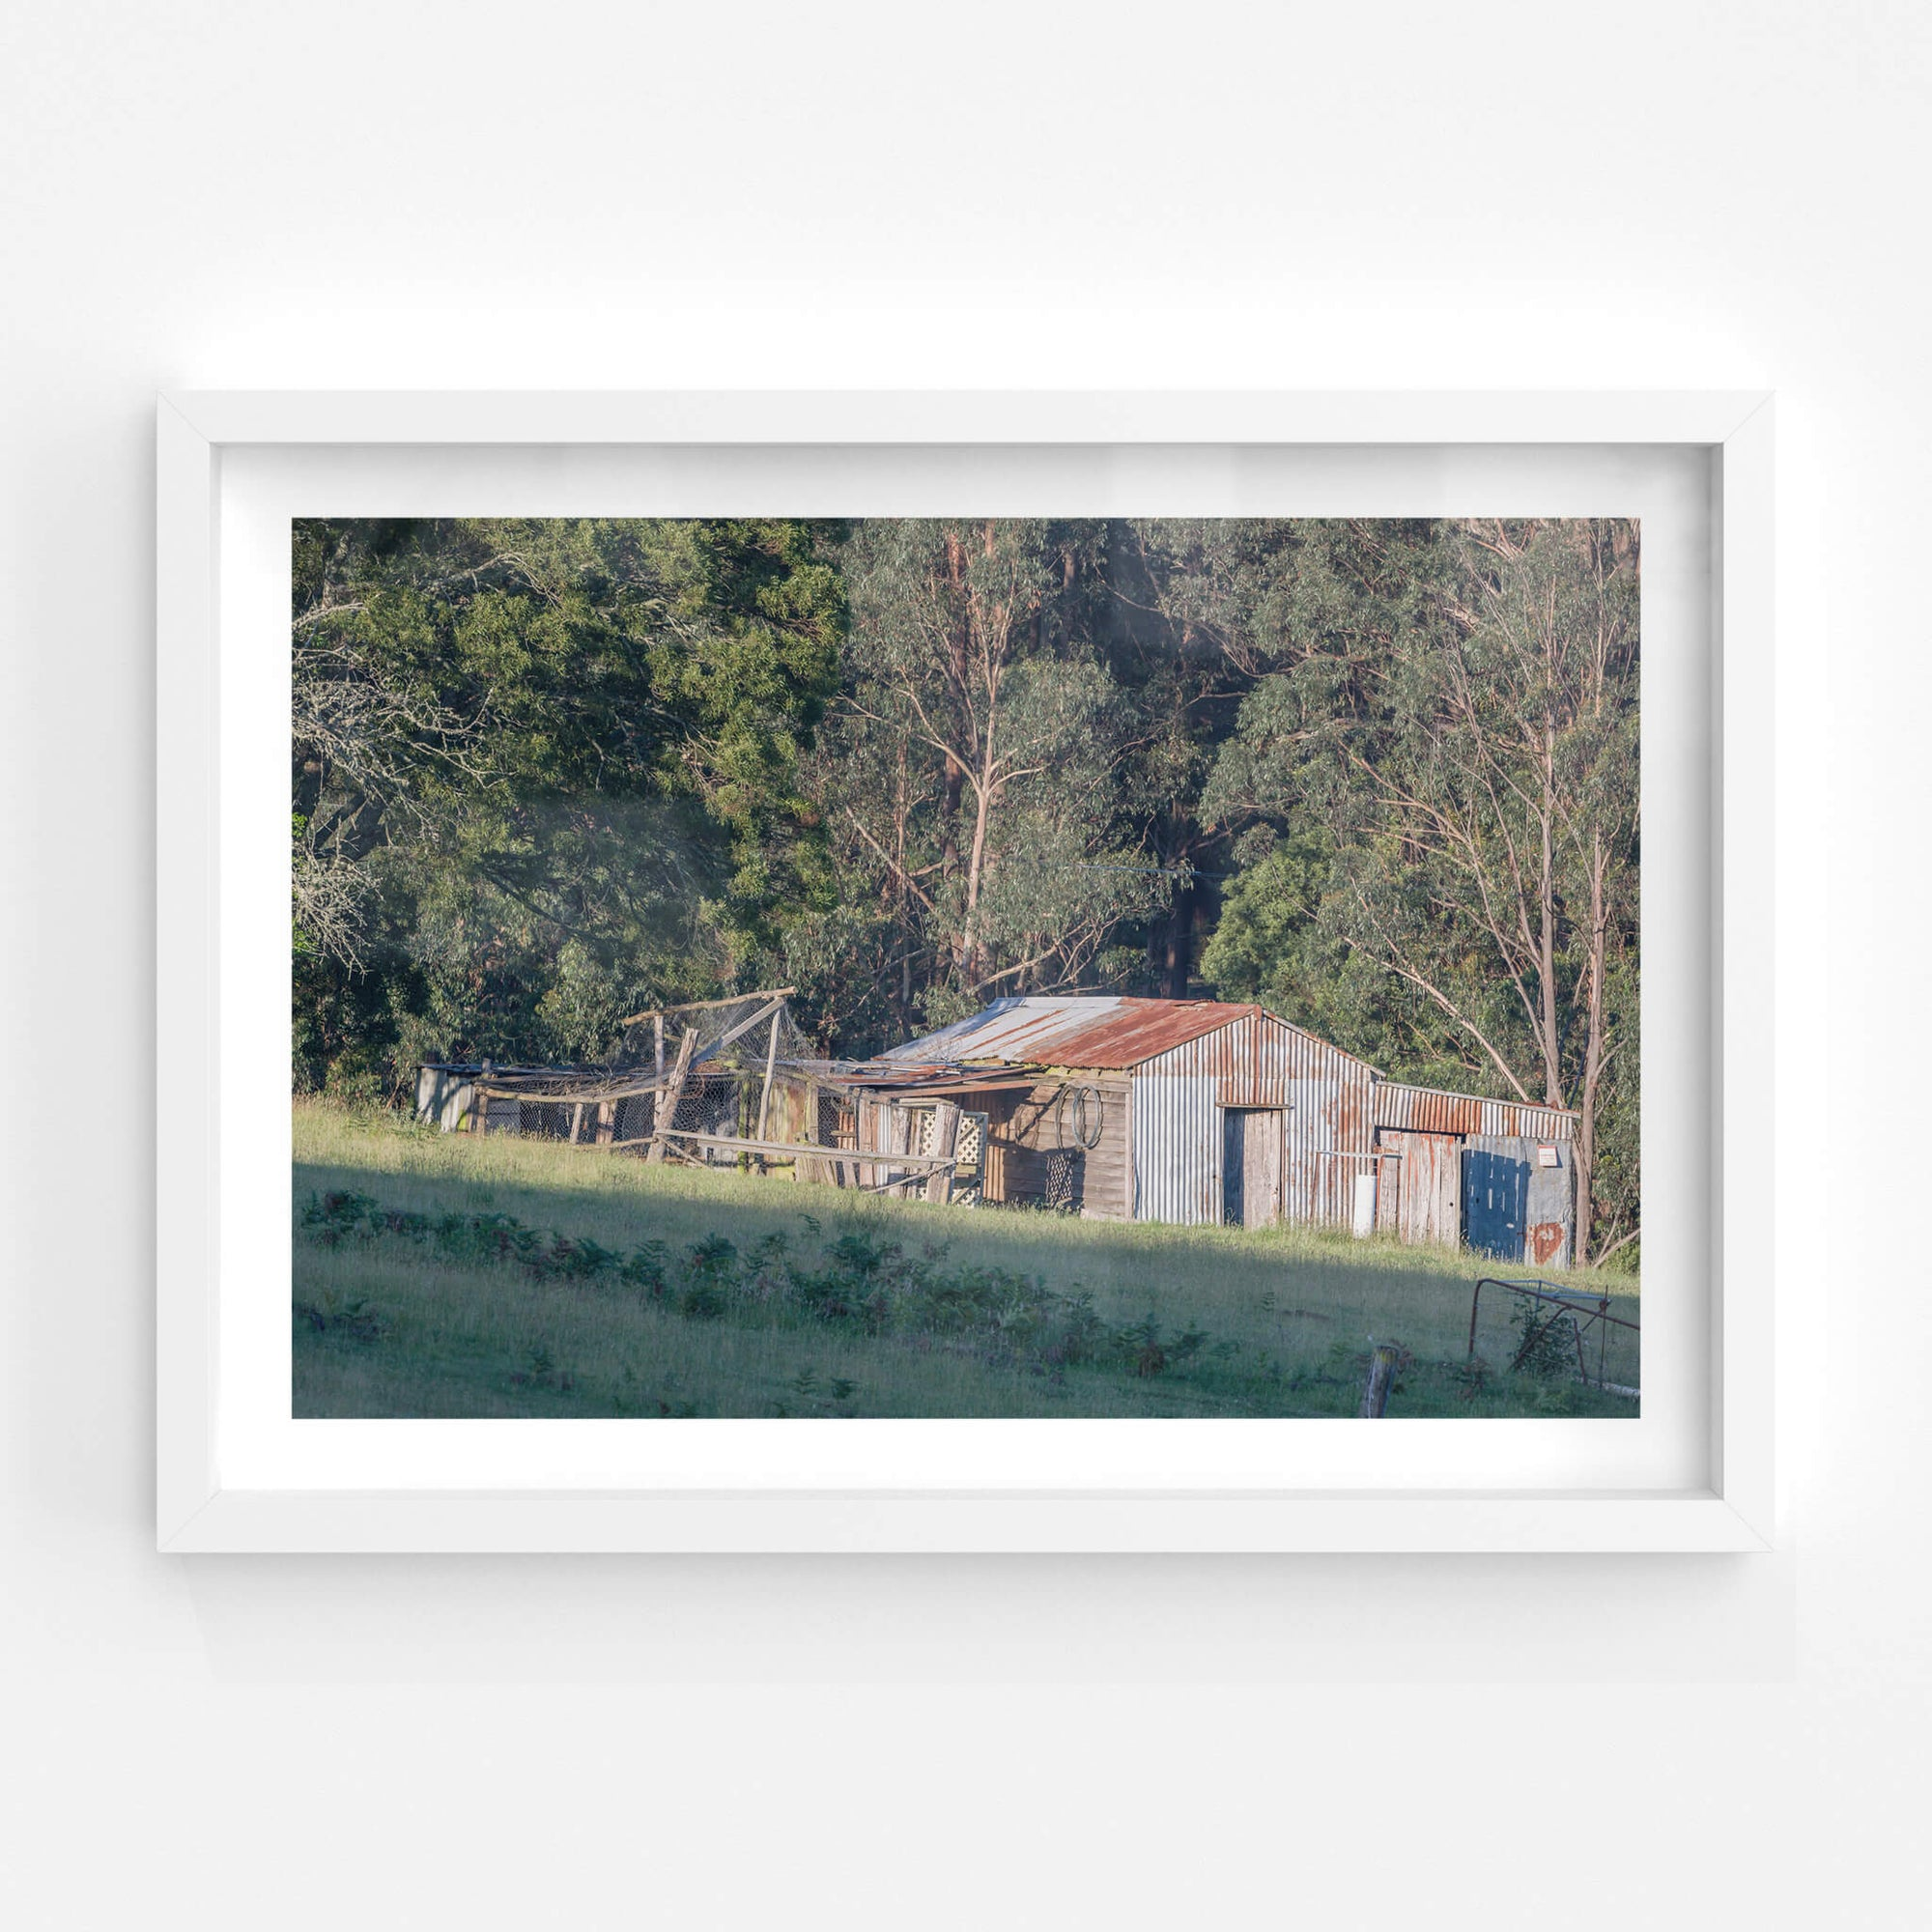 South Pambula Shed | The Woolshed